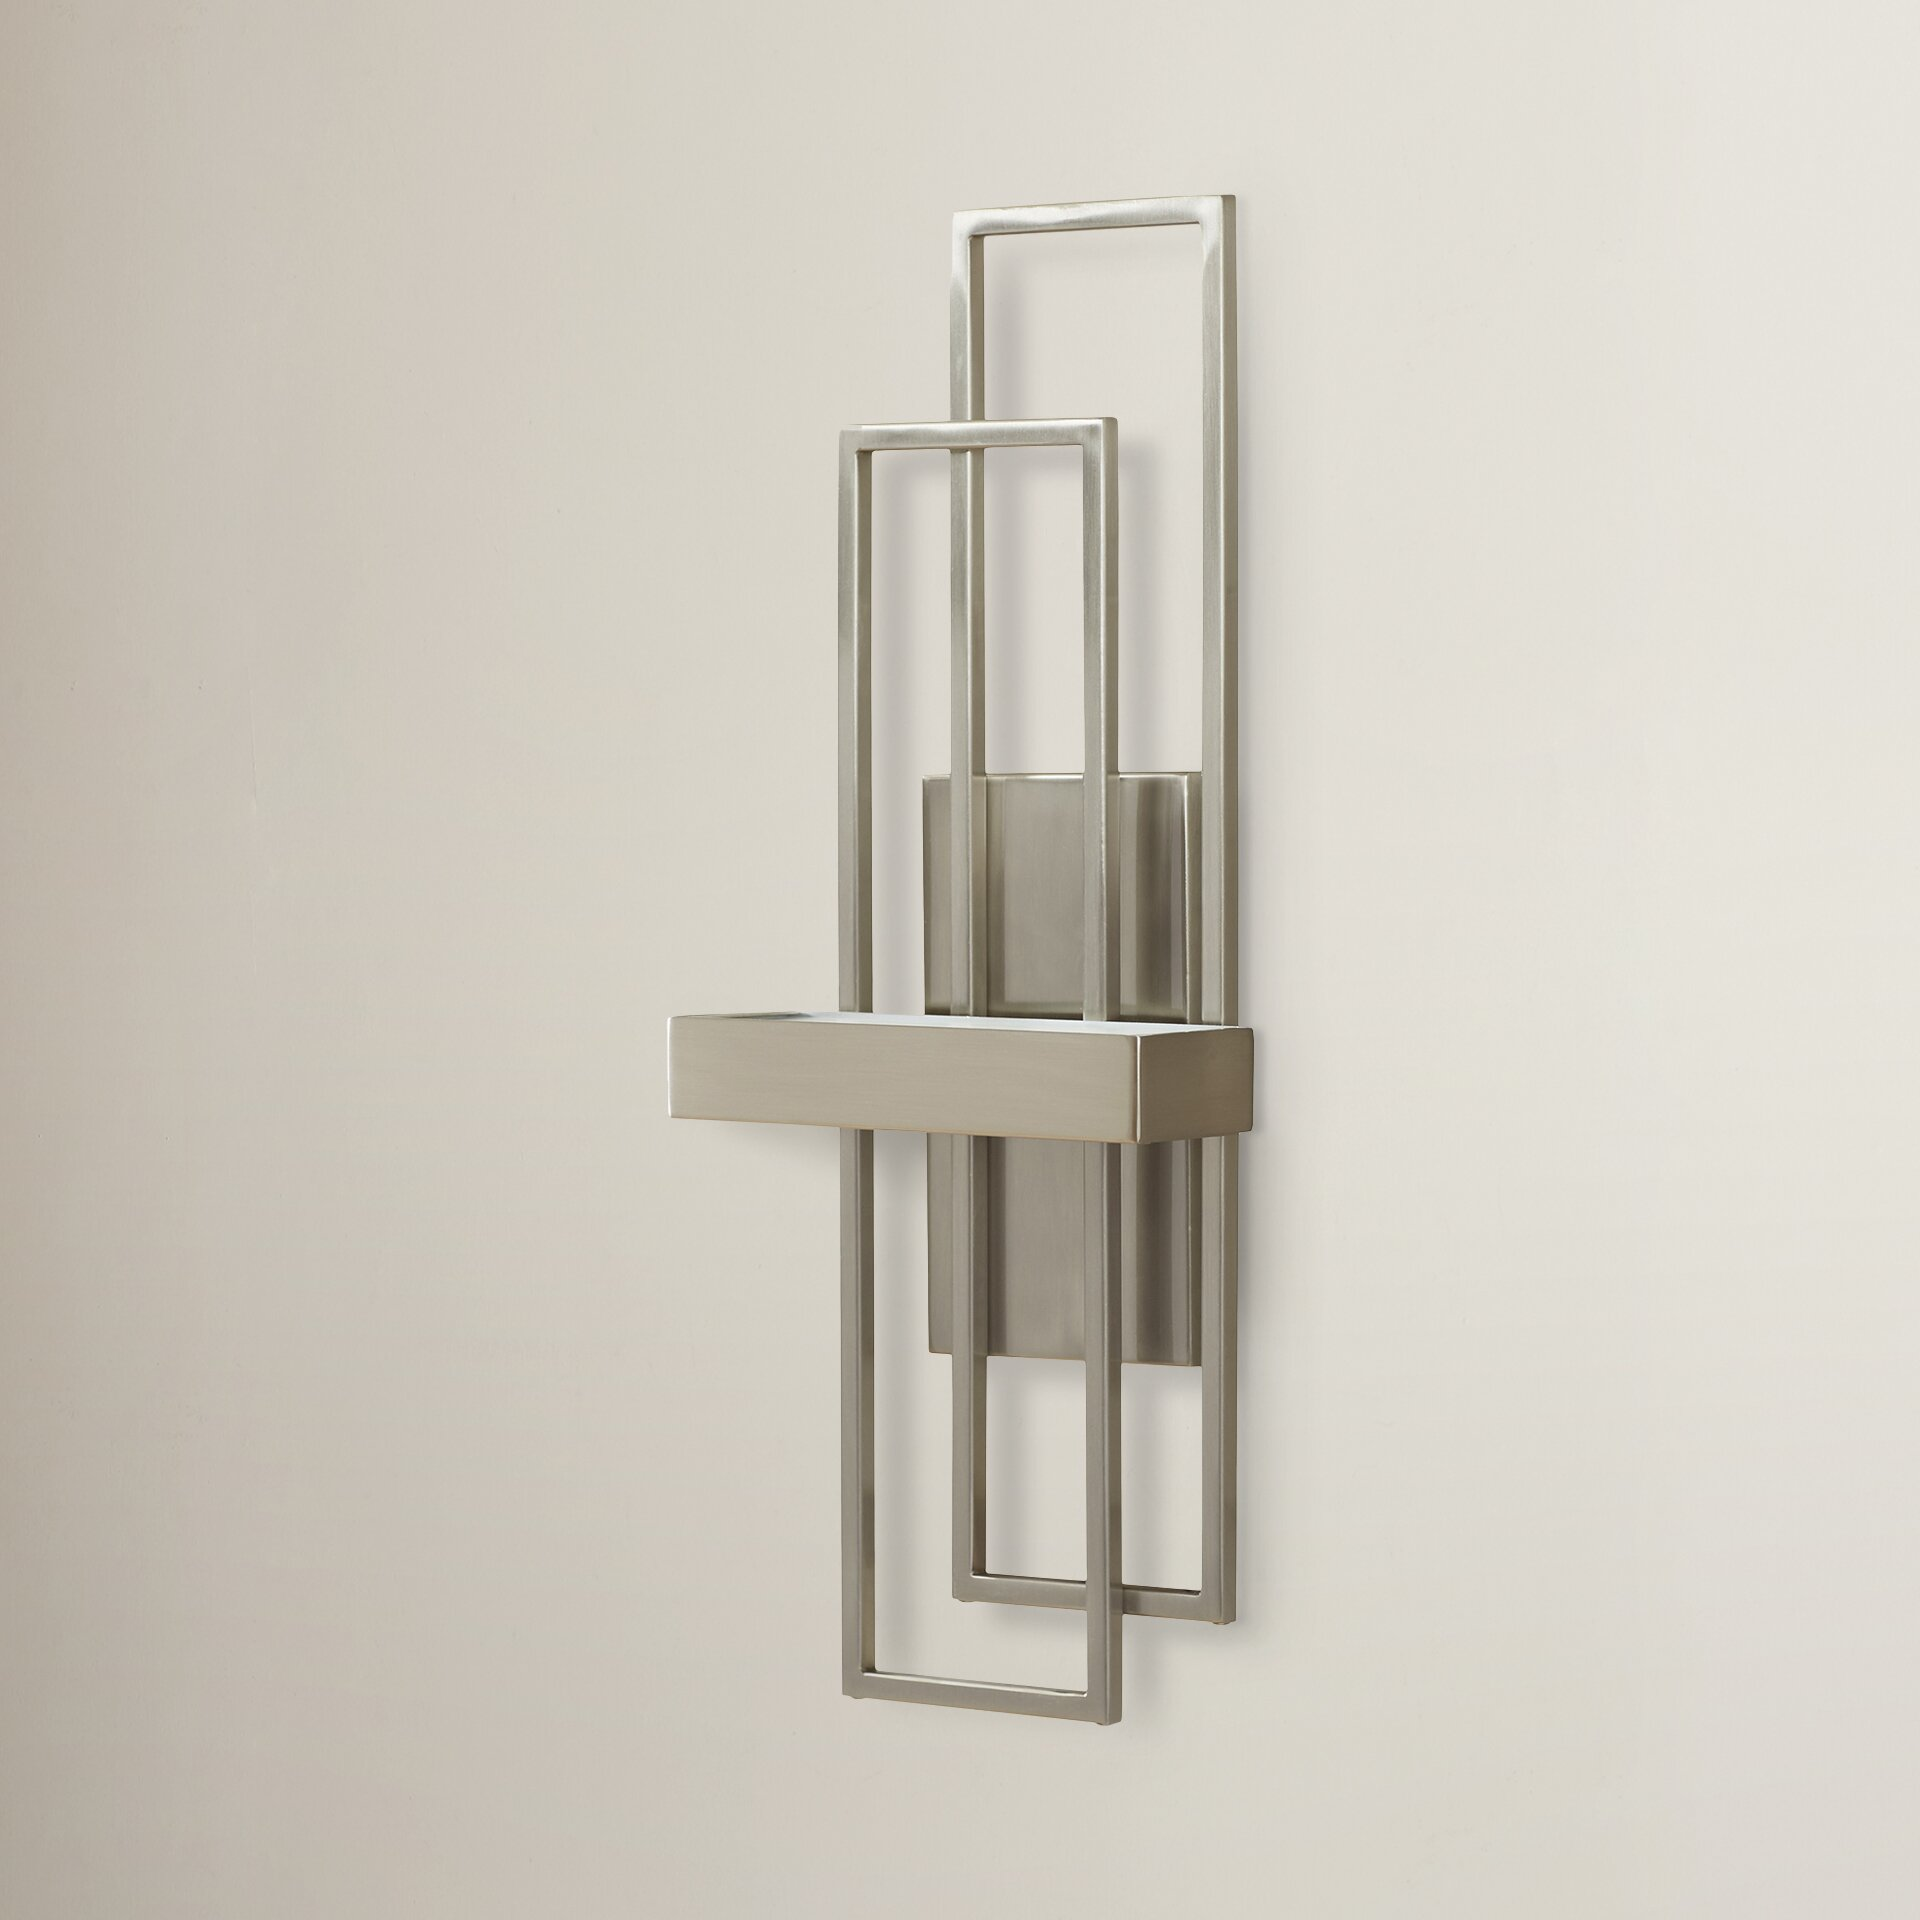 Muirhead 1-Light Wall Sconce & Reviews AllModern